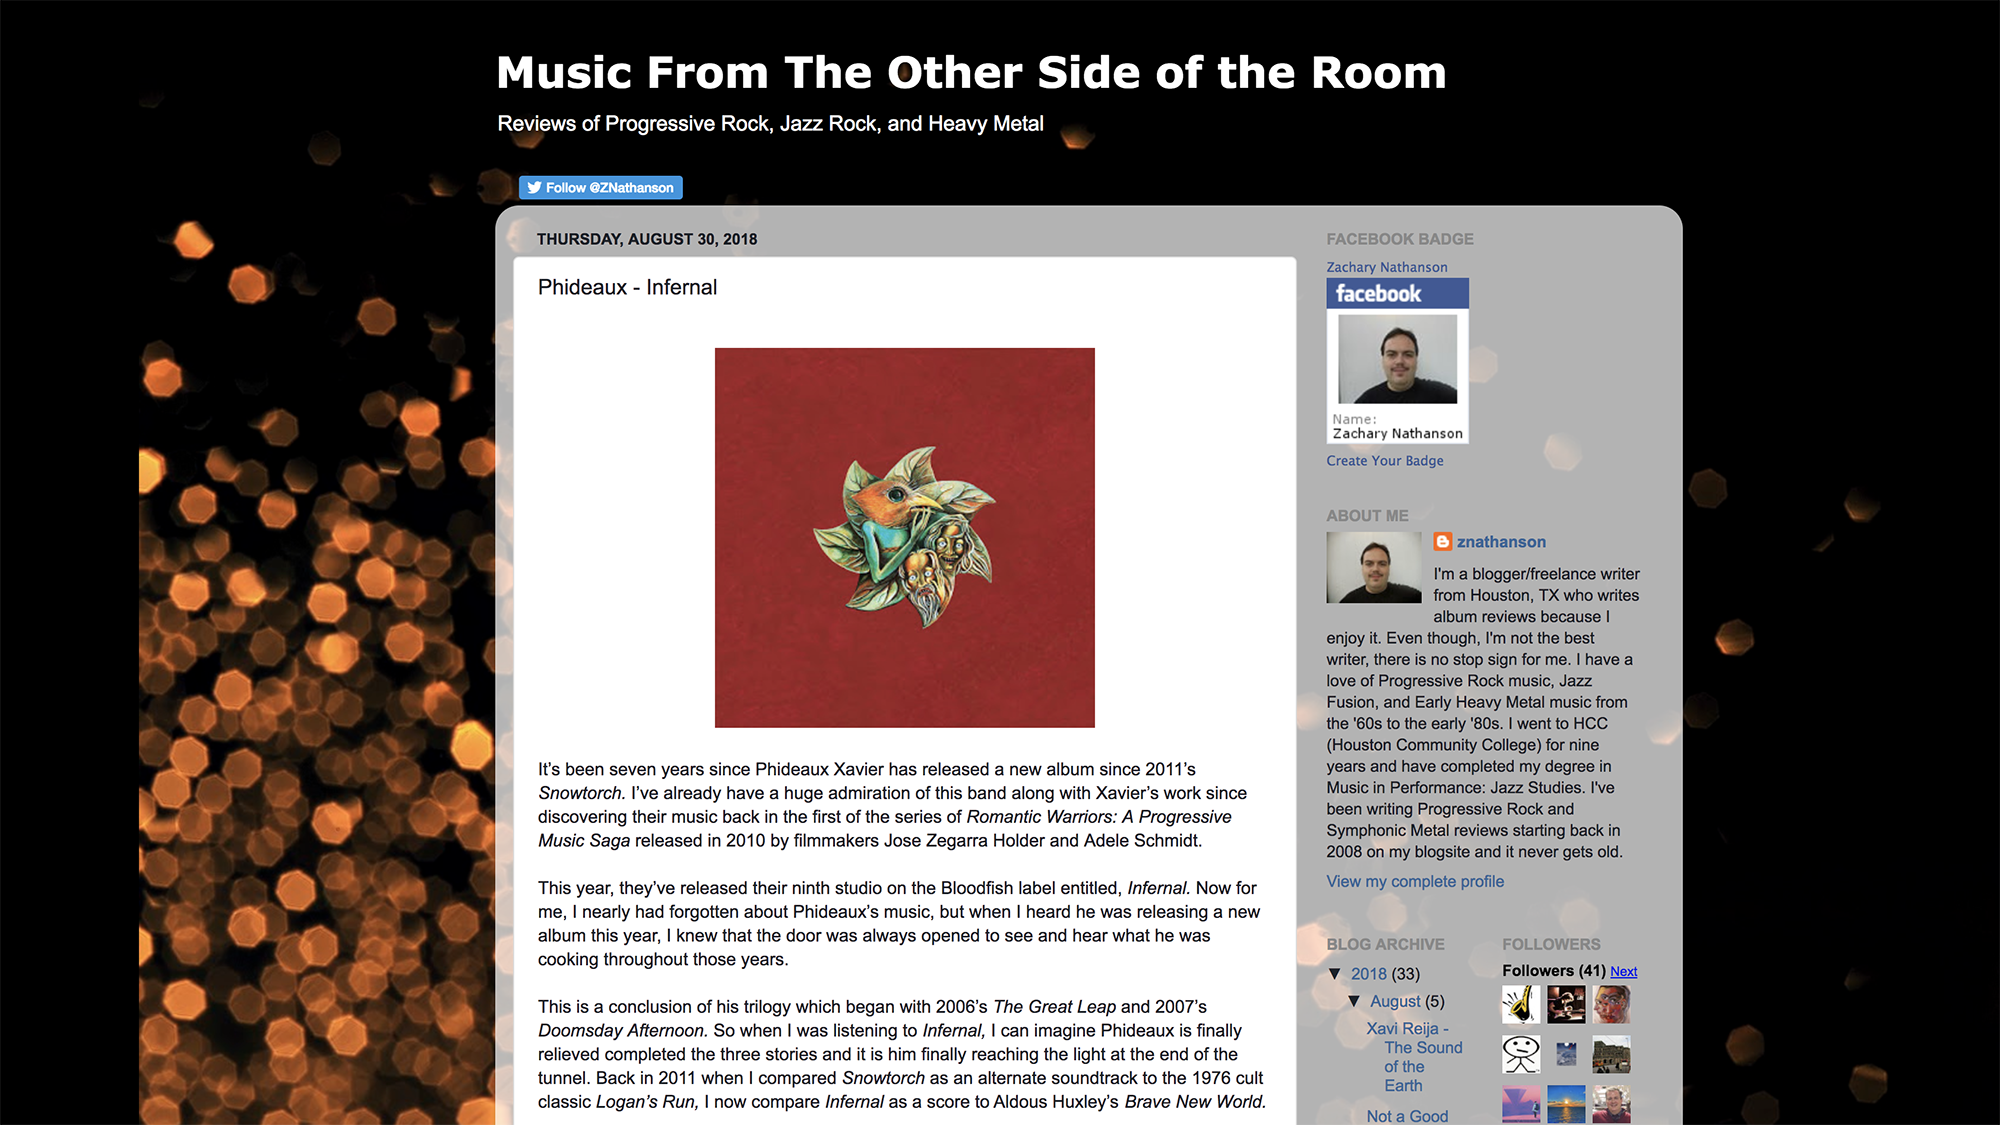 Music From The Other Side of the Room